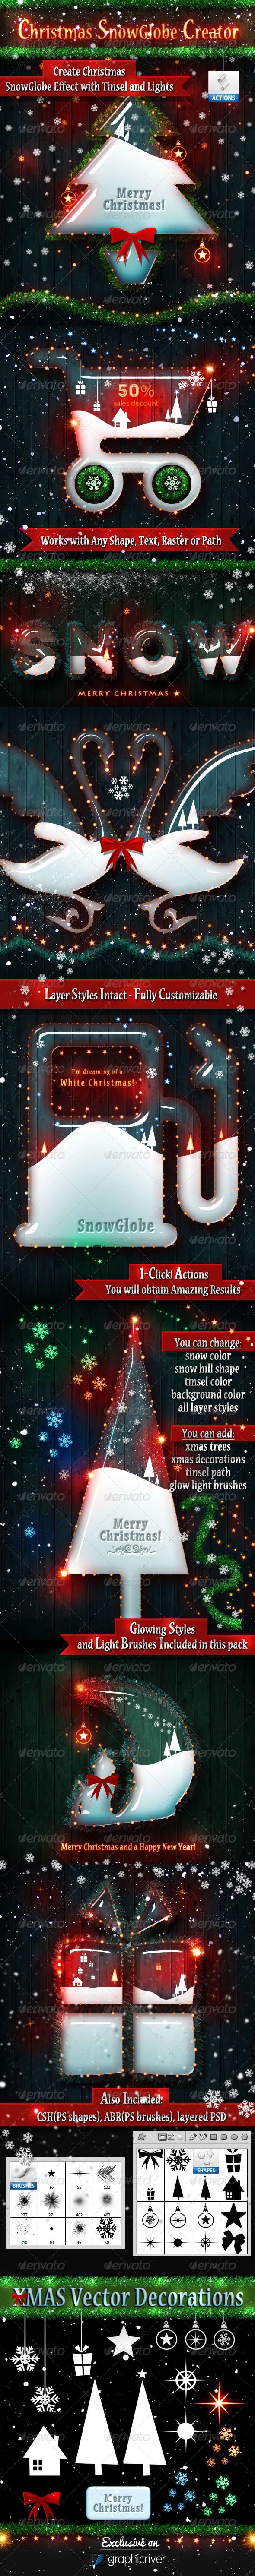 GraphicRiver Christmas Snow Globe Photoshop Creator 6143379